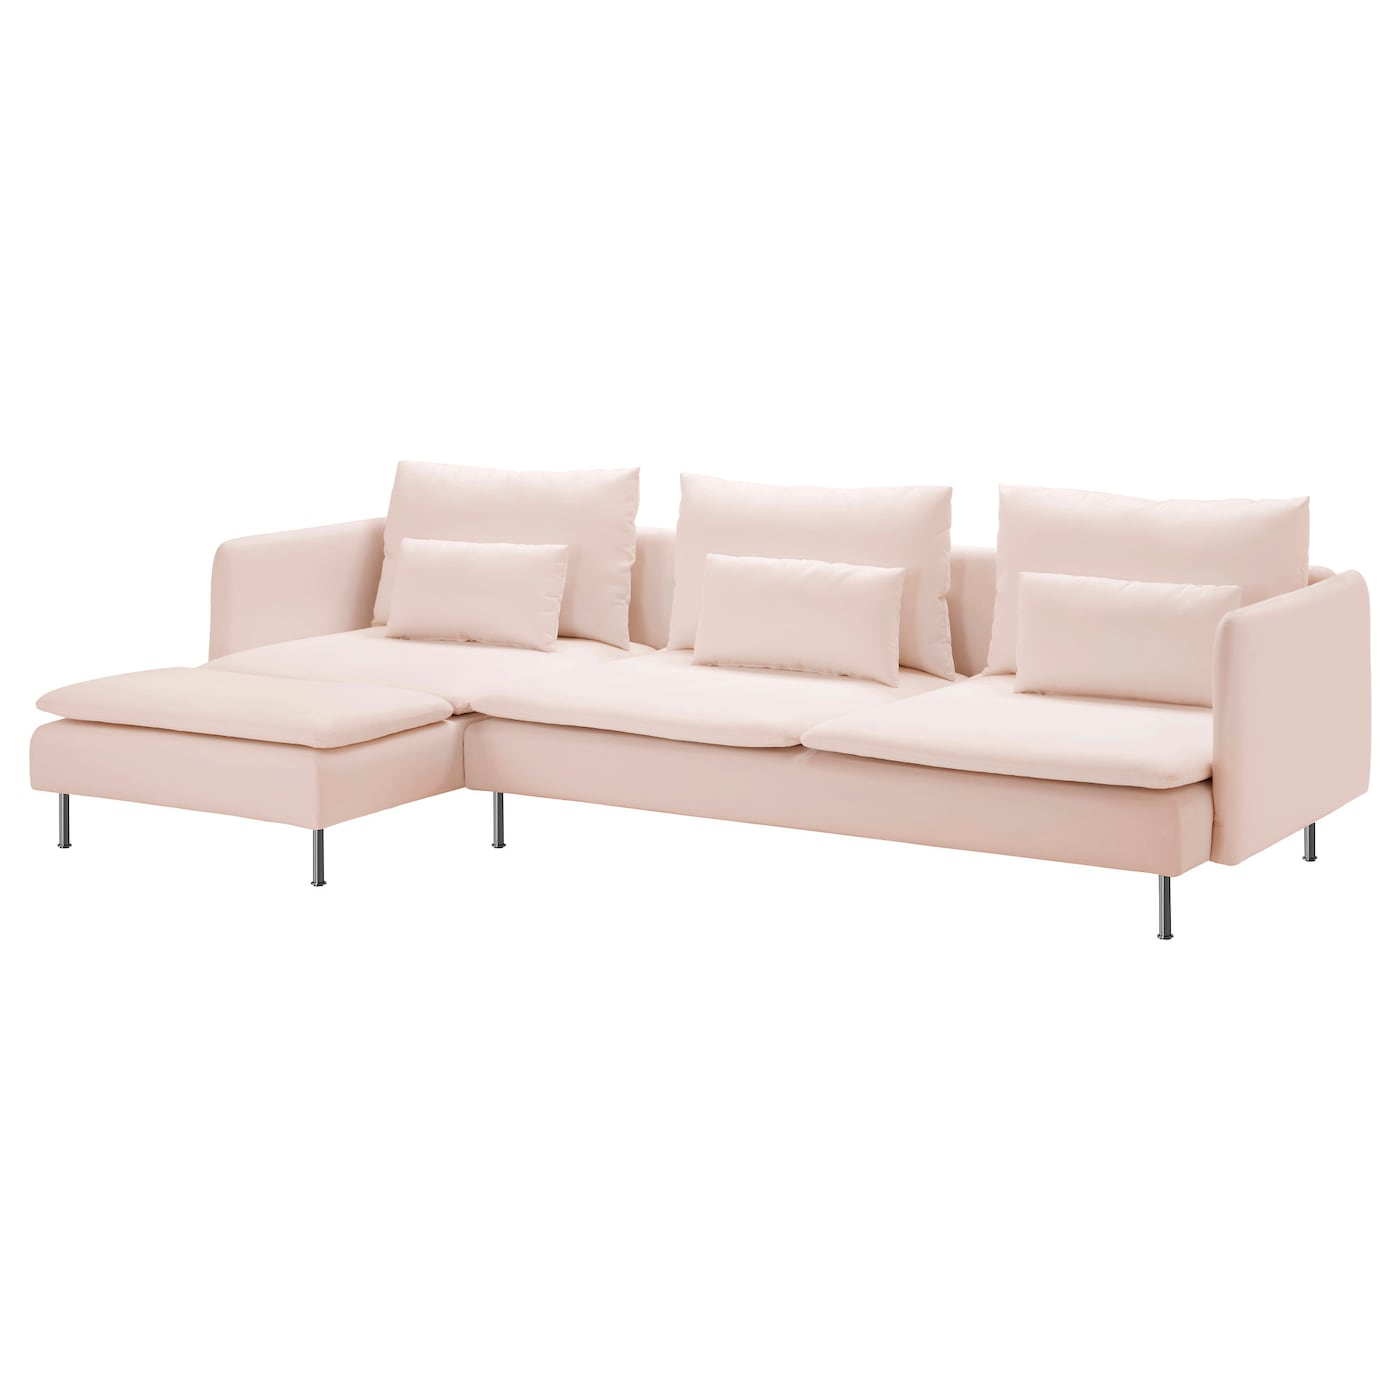 Fabric sofas ikea ireland dublin for Chaise en osier ikea